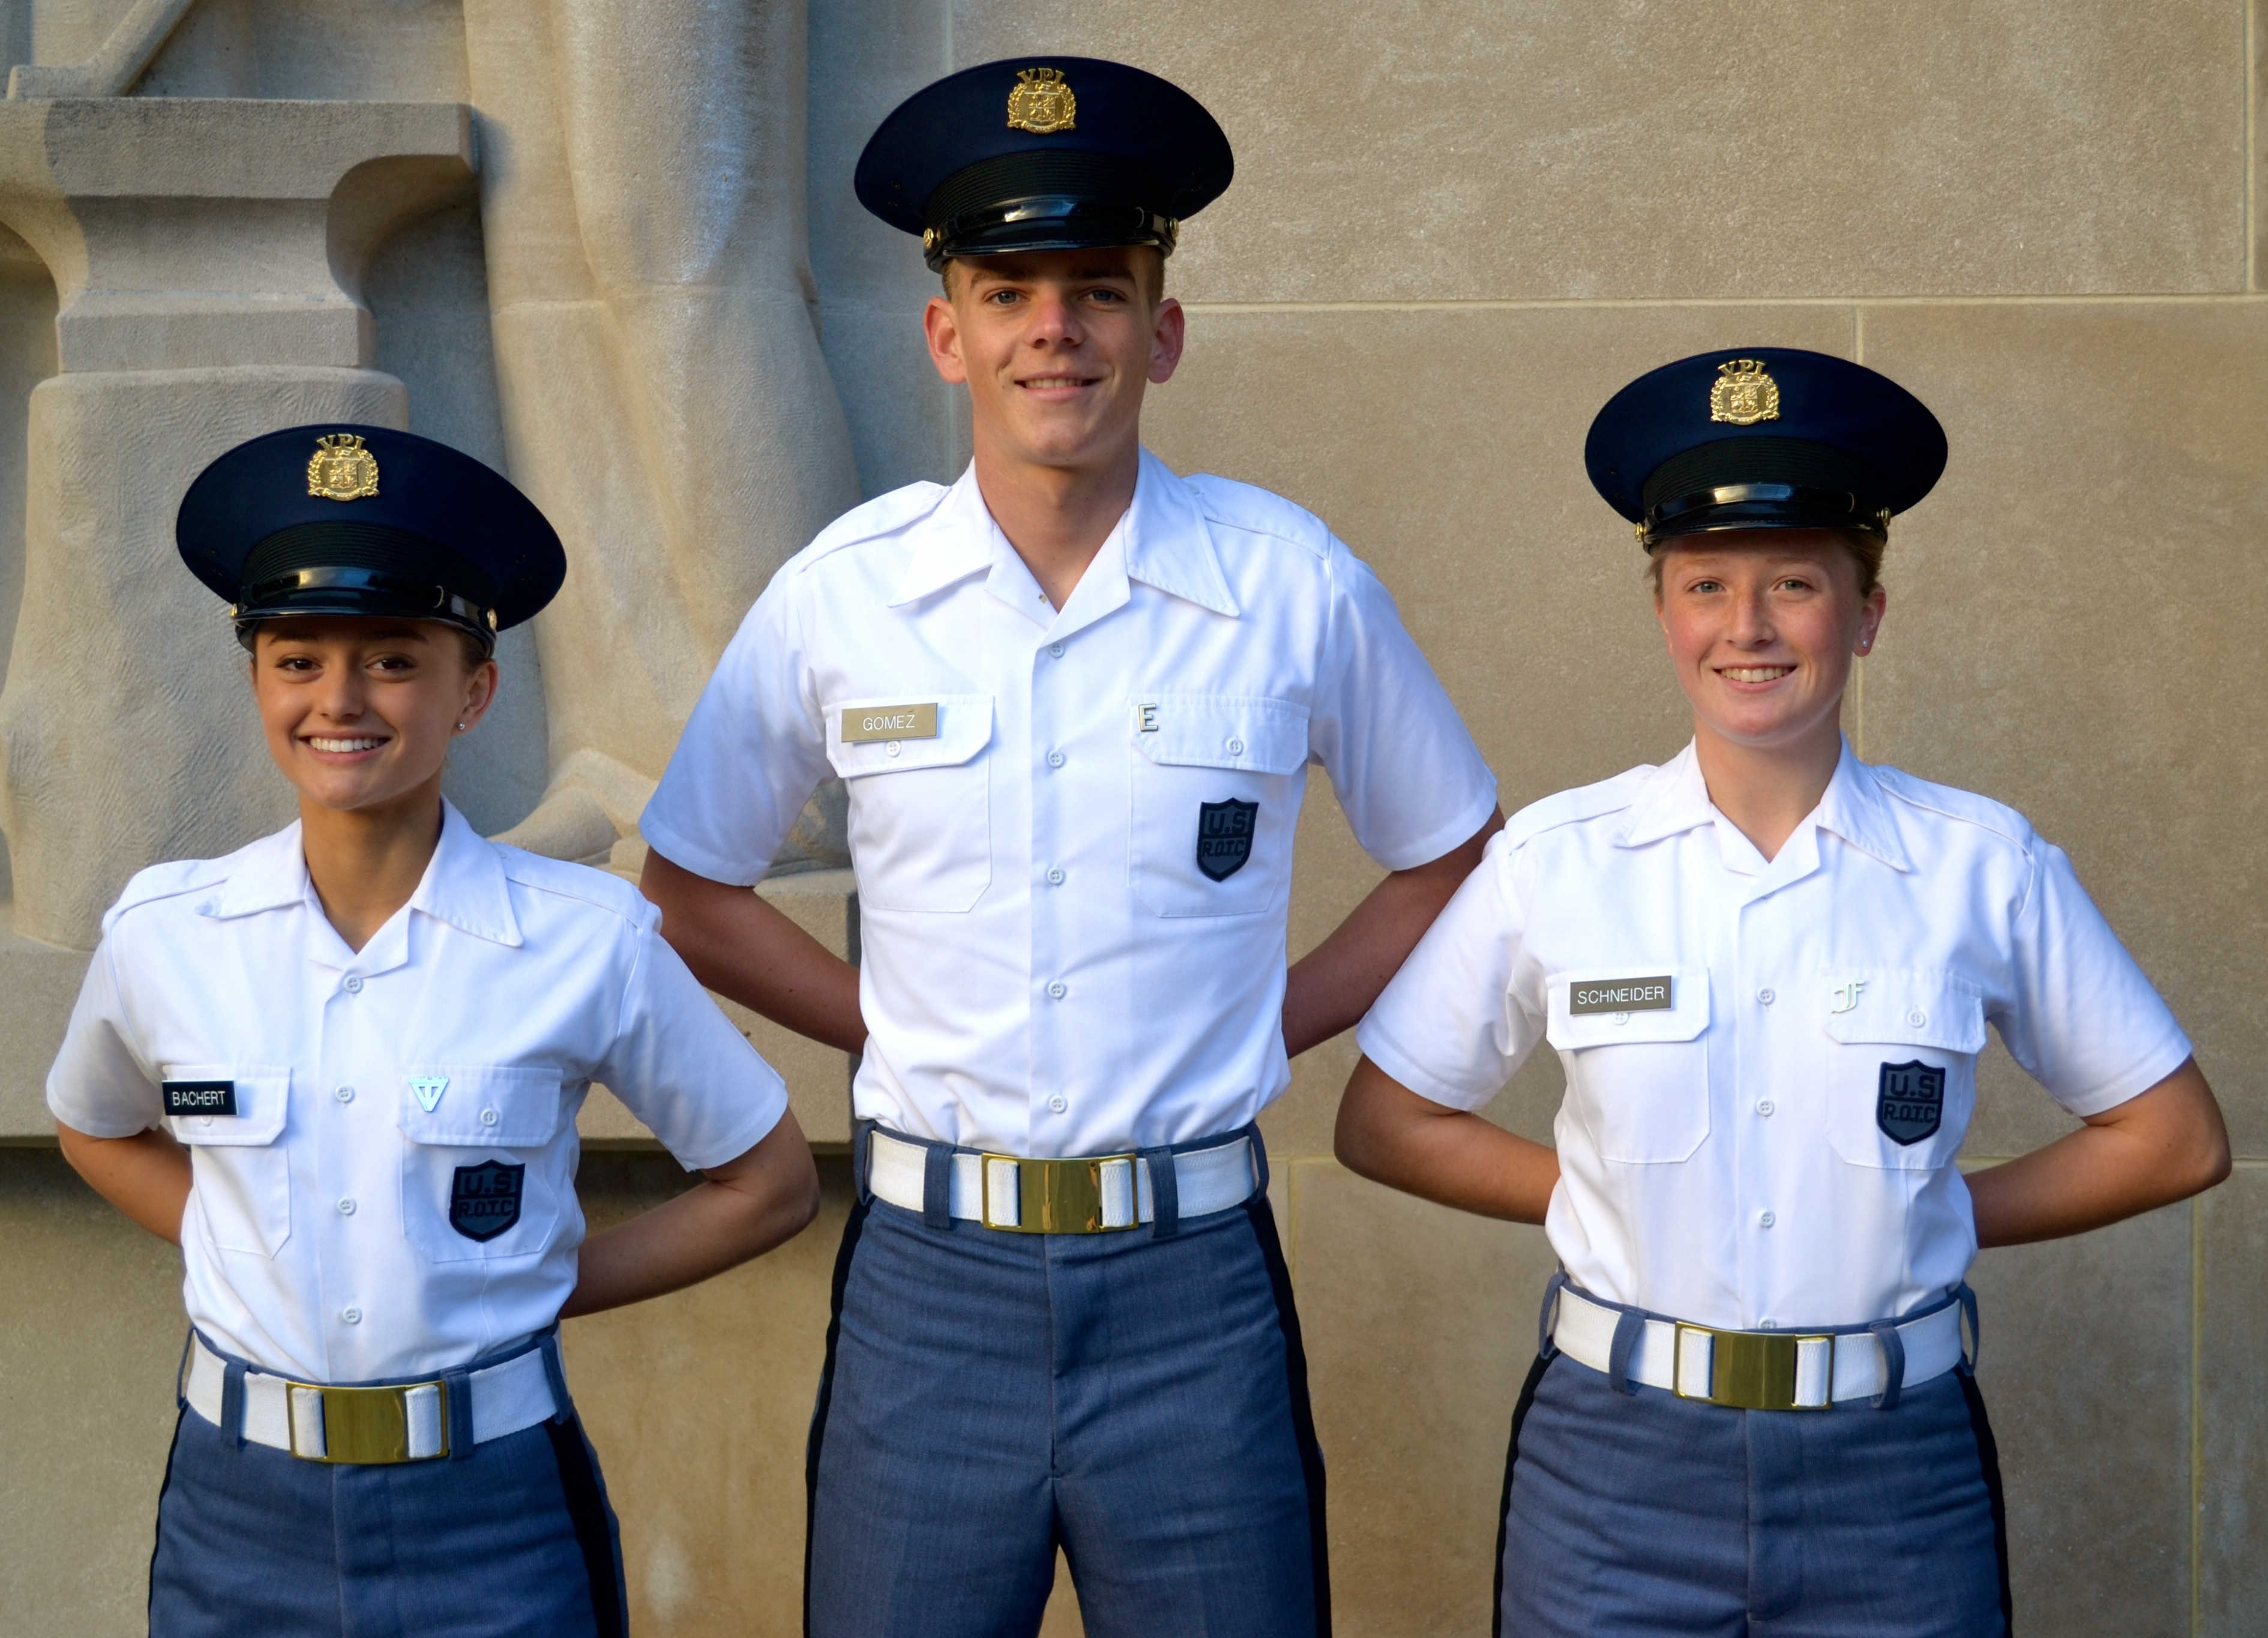 From left to right are Cadets Sabrina Bachert, Alex Gomez, and Robyn Schneider in front of the Pylons.